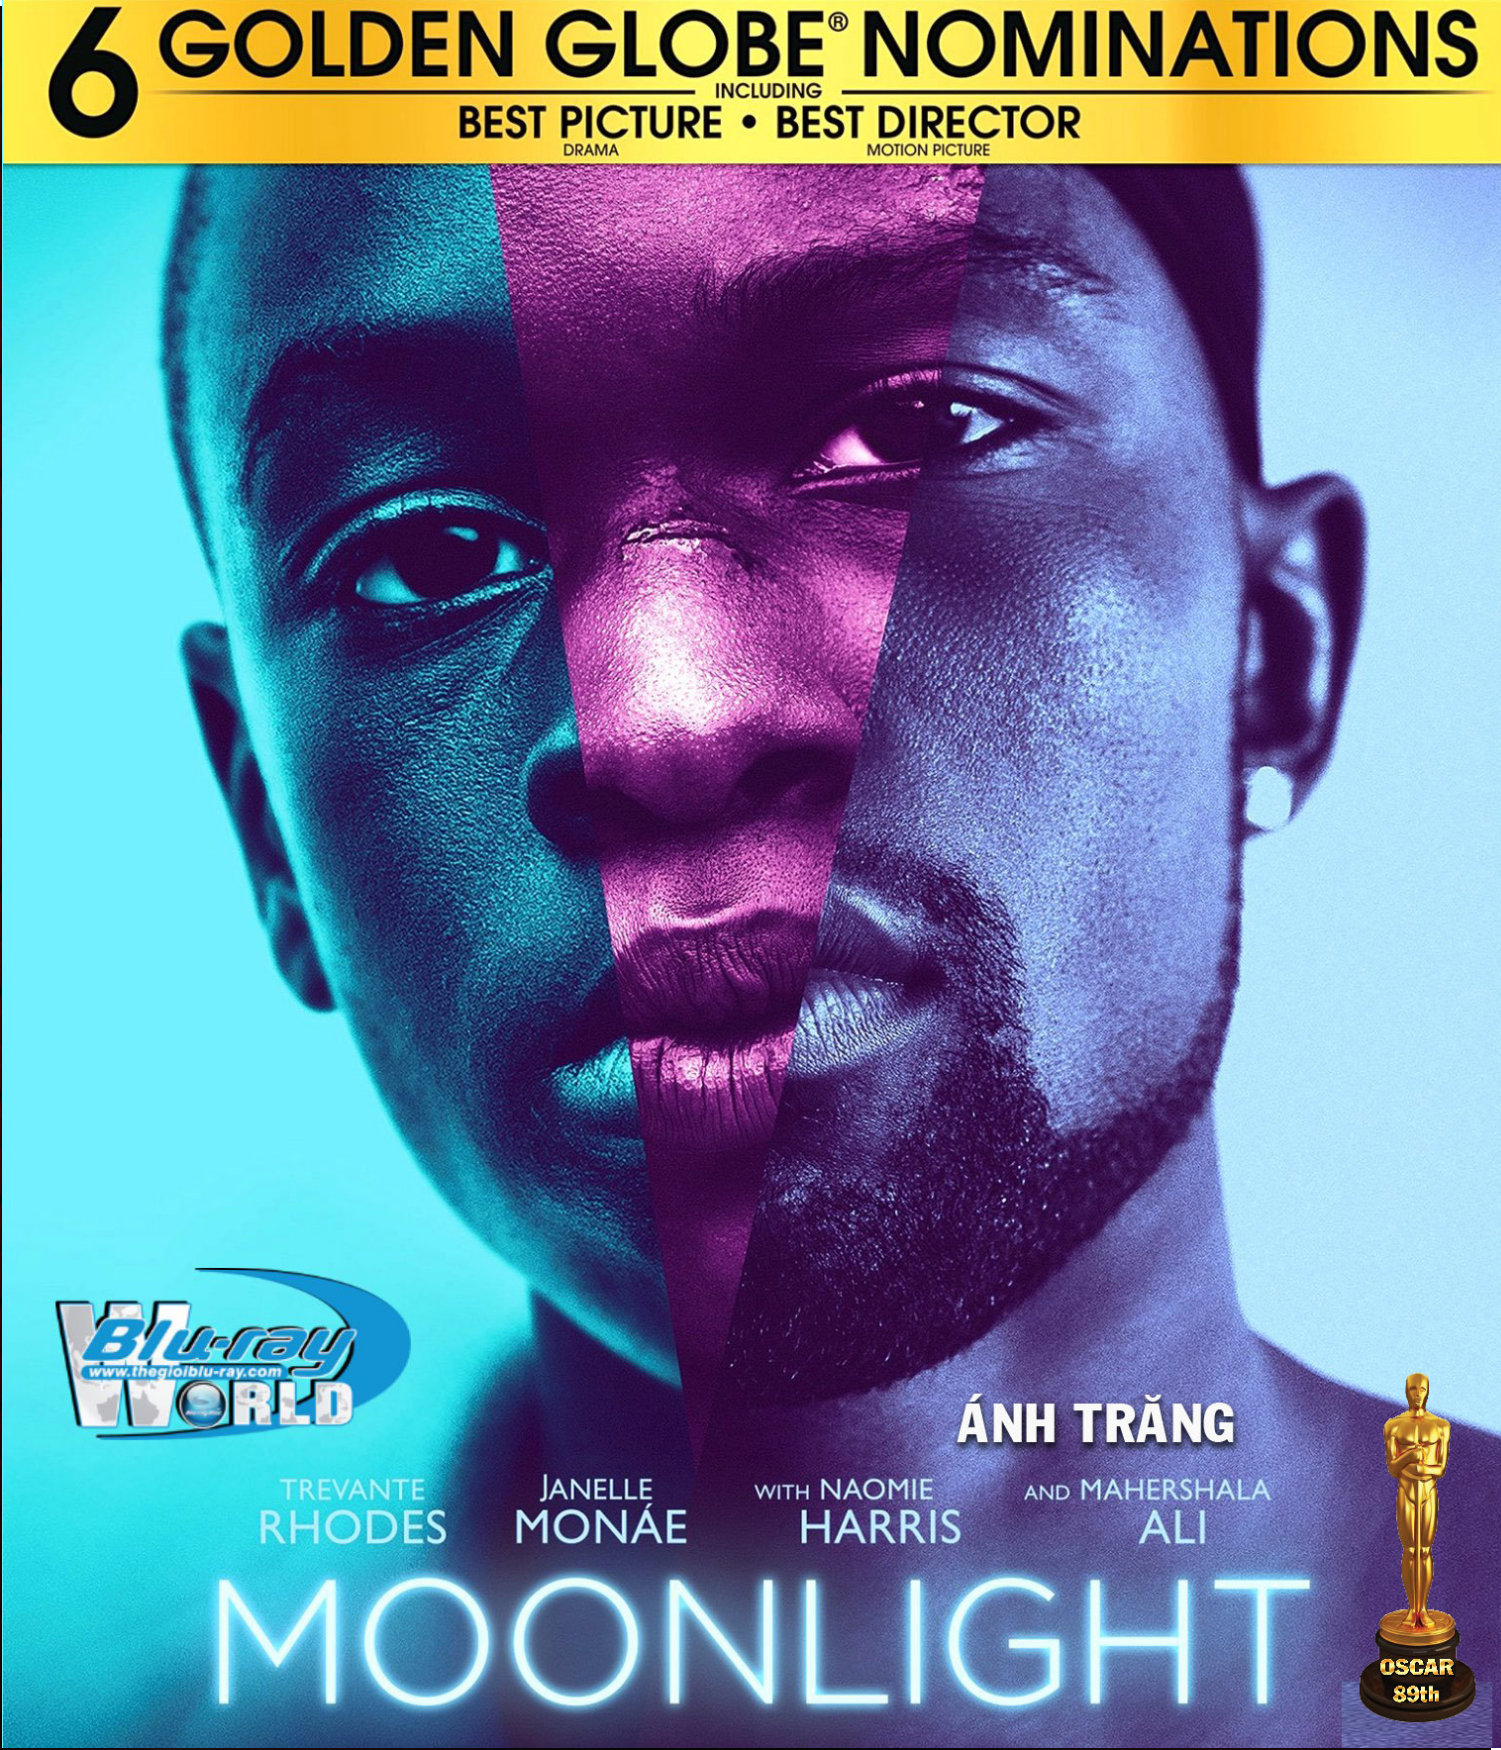 F961. Moonlight 2016 - Ánh Trăng 2016 2D50G (DTS-HD MA 5.1) OSCAR 89TH